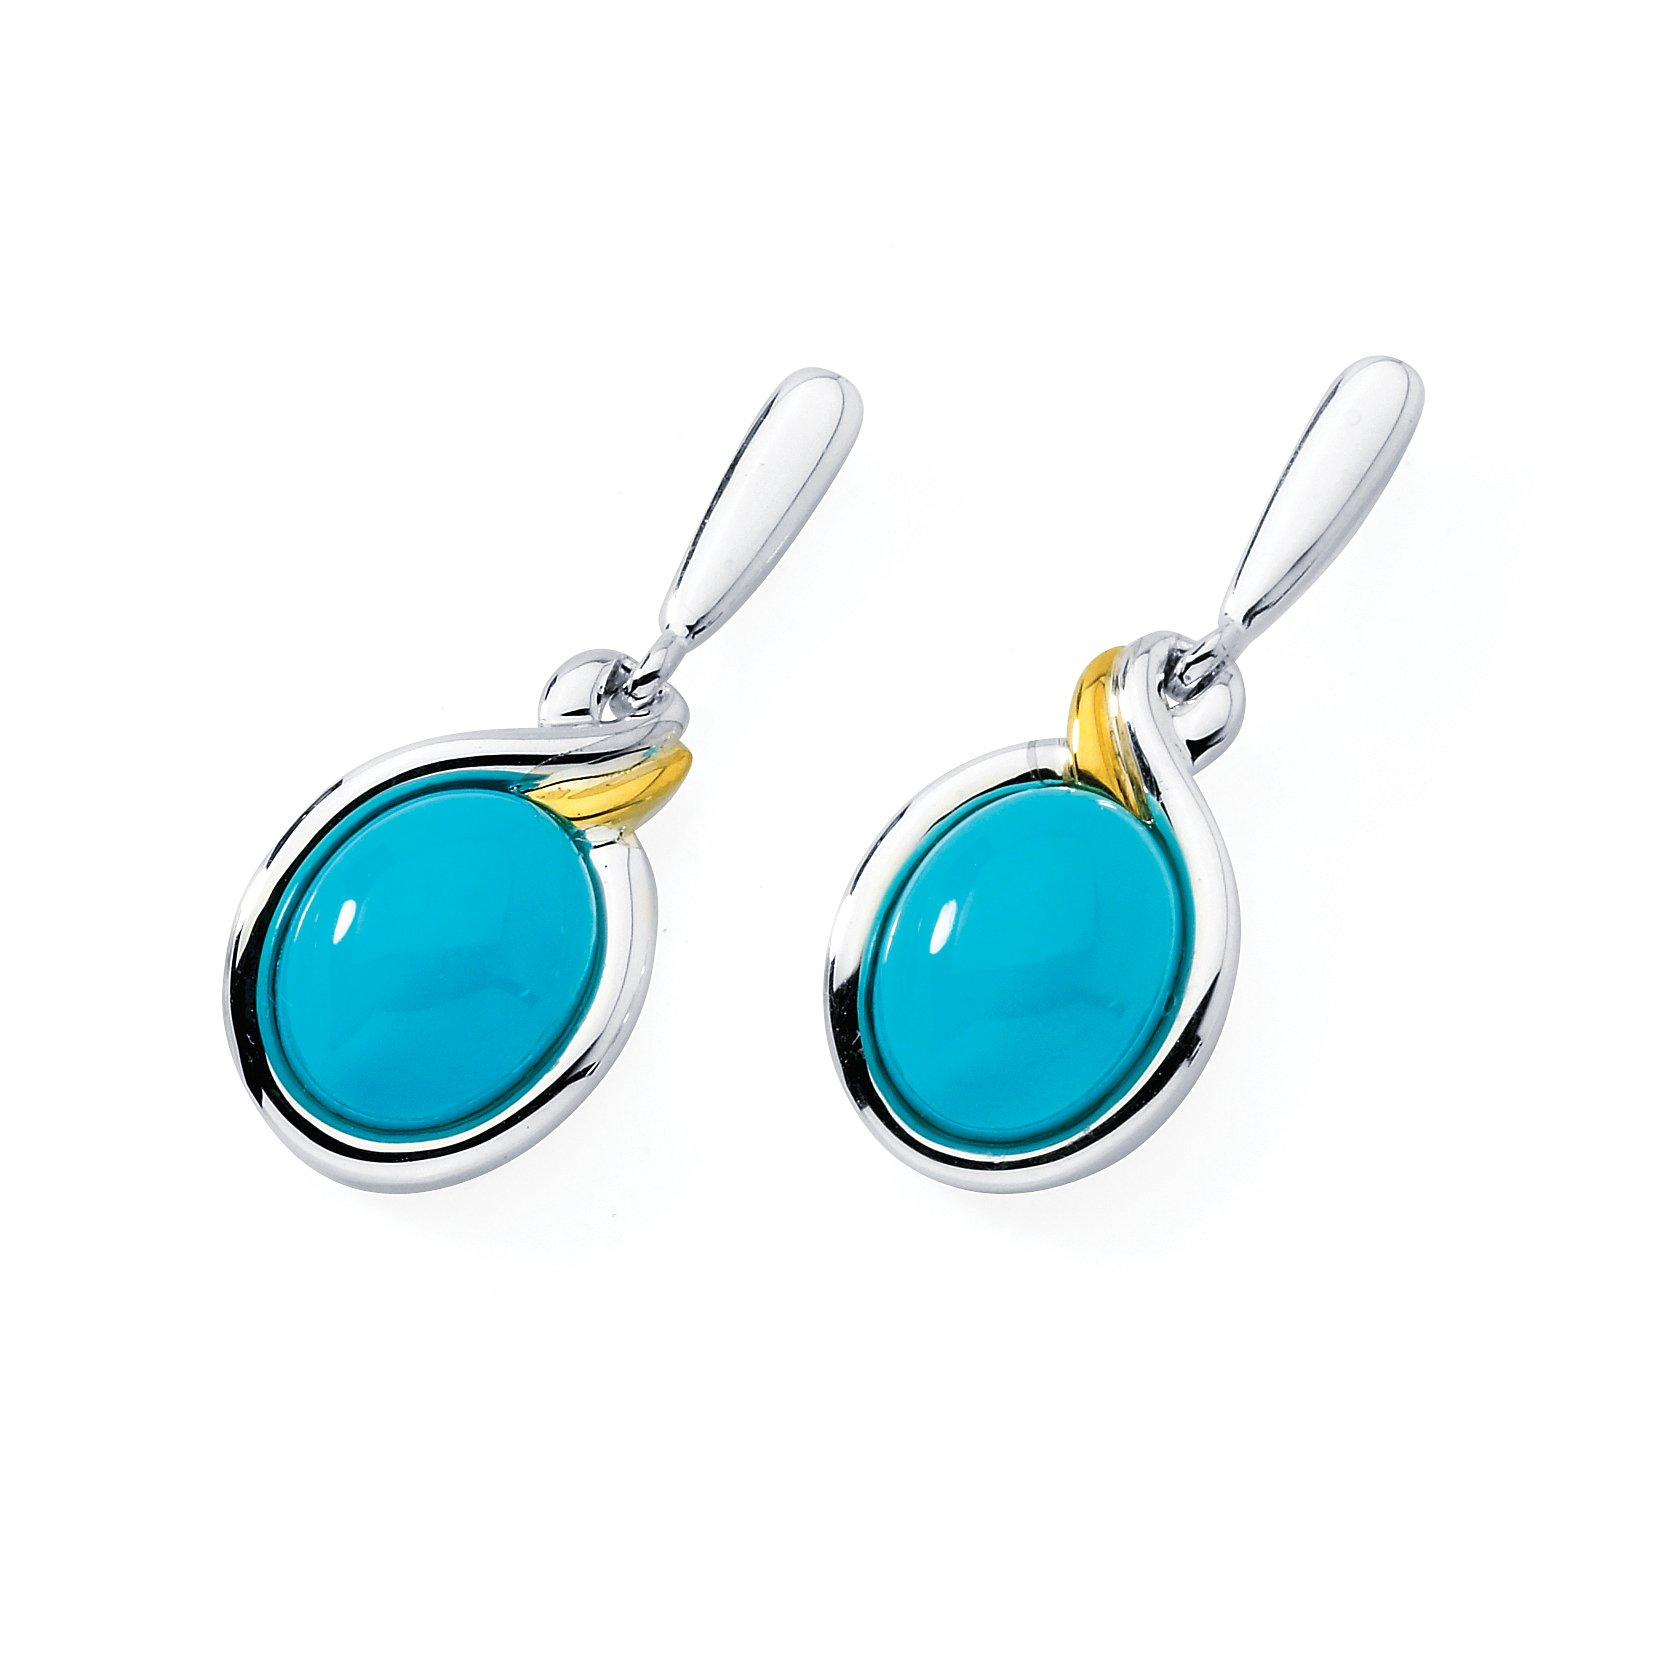 18K Gold and Sterling Silver Turquiose Dangle Earrings by Boston Bay Diamonds (Image #1)